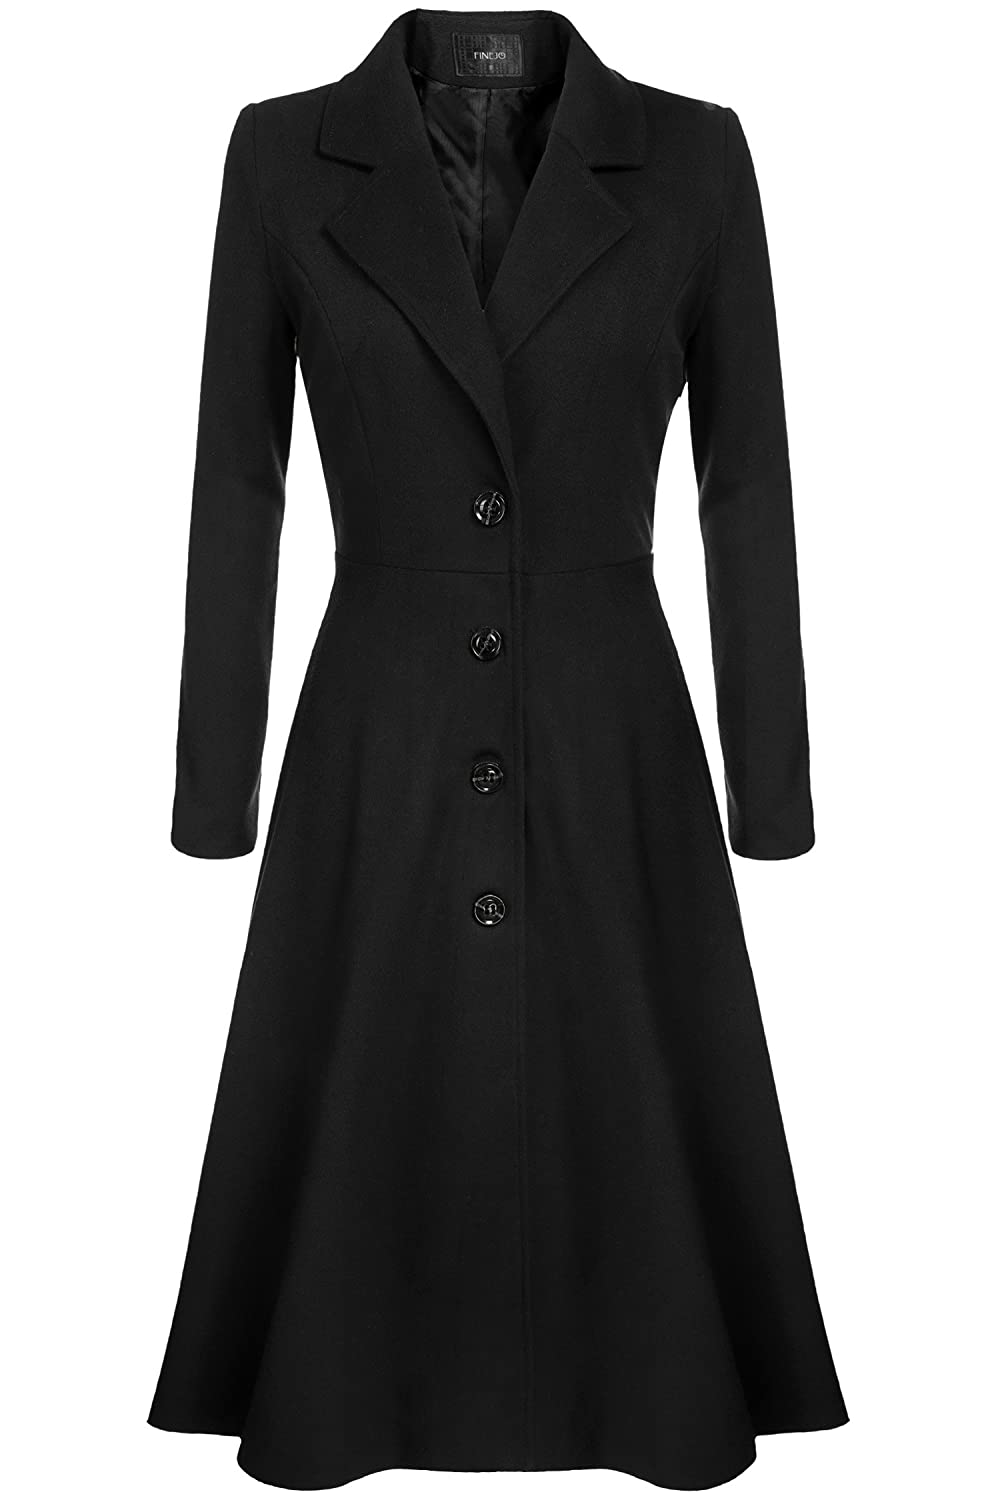 1940s Style Coats and Jackets for Sale Kize Women Single Breasted Overcoat Long Trench Coat Outerwear plus size $49.99 AT vintagedancer.com